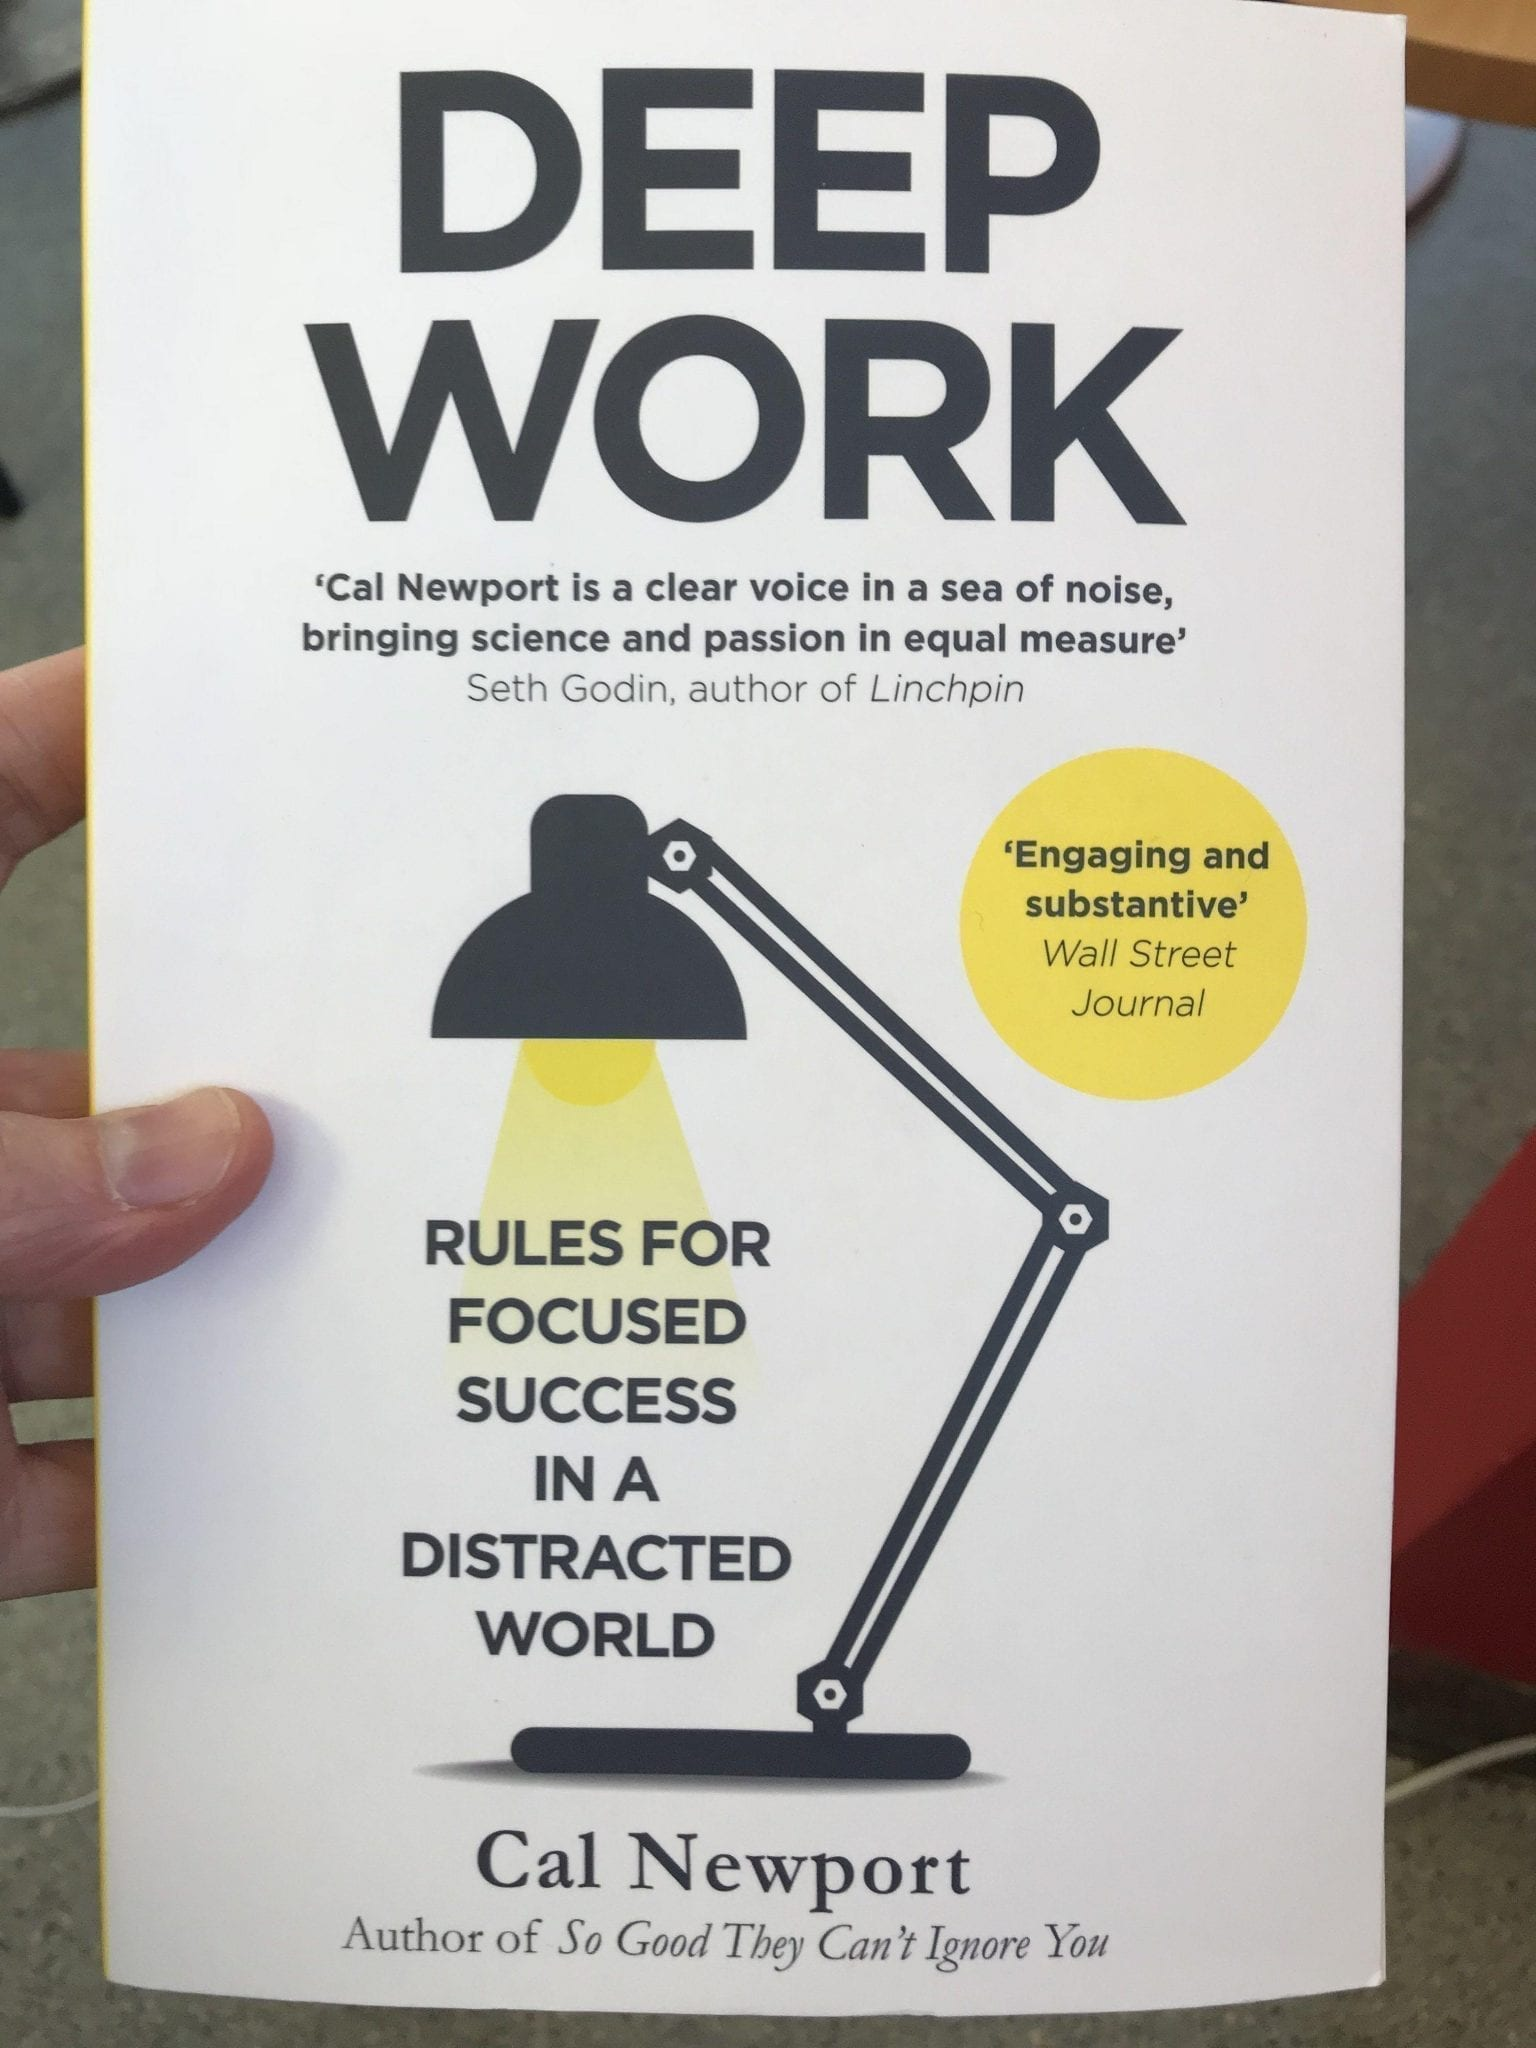 Book cover of 'Deep Work' by Cal Newport